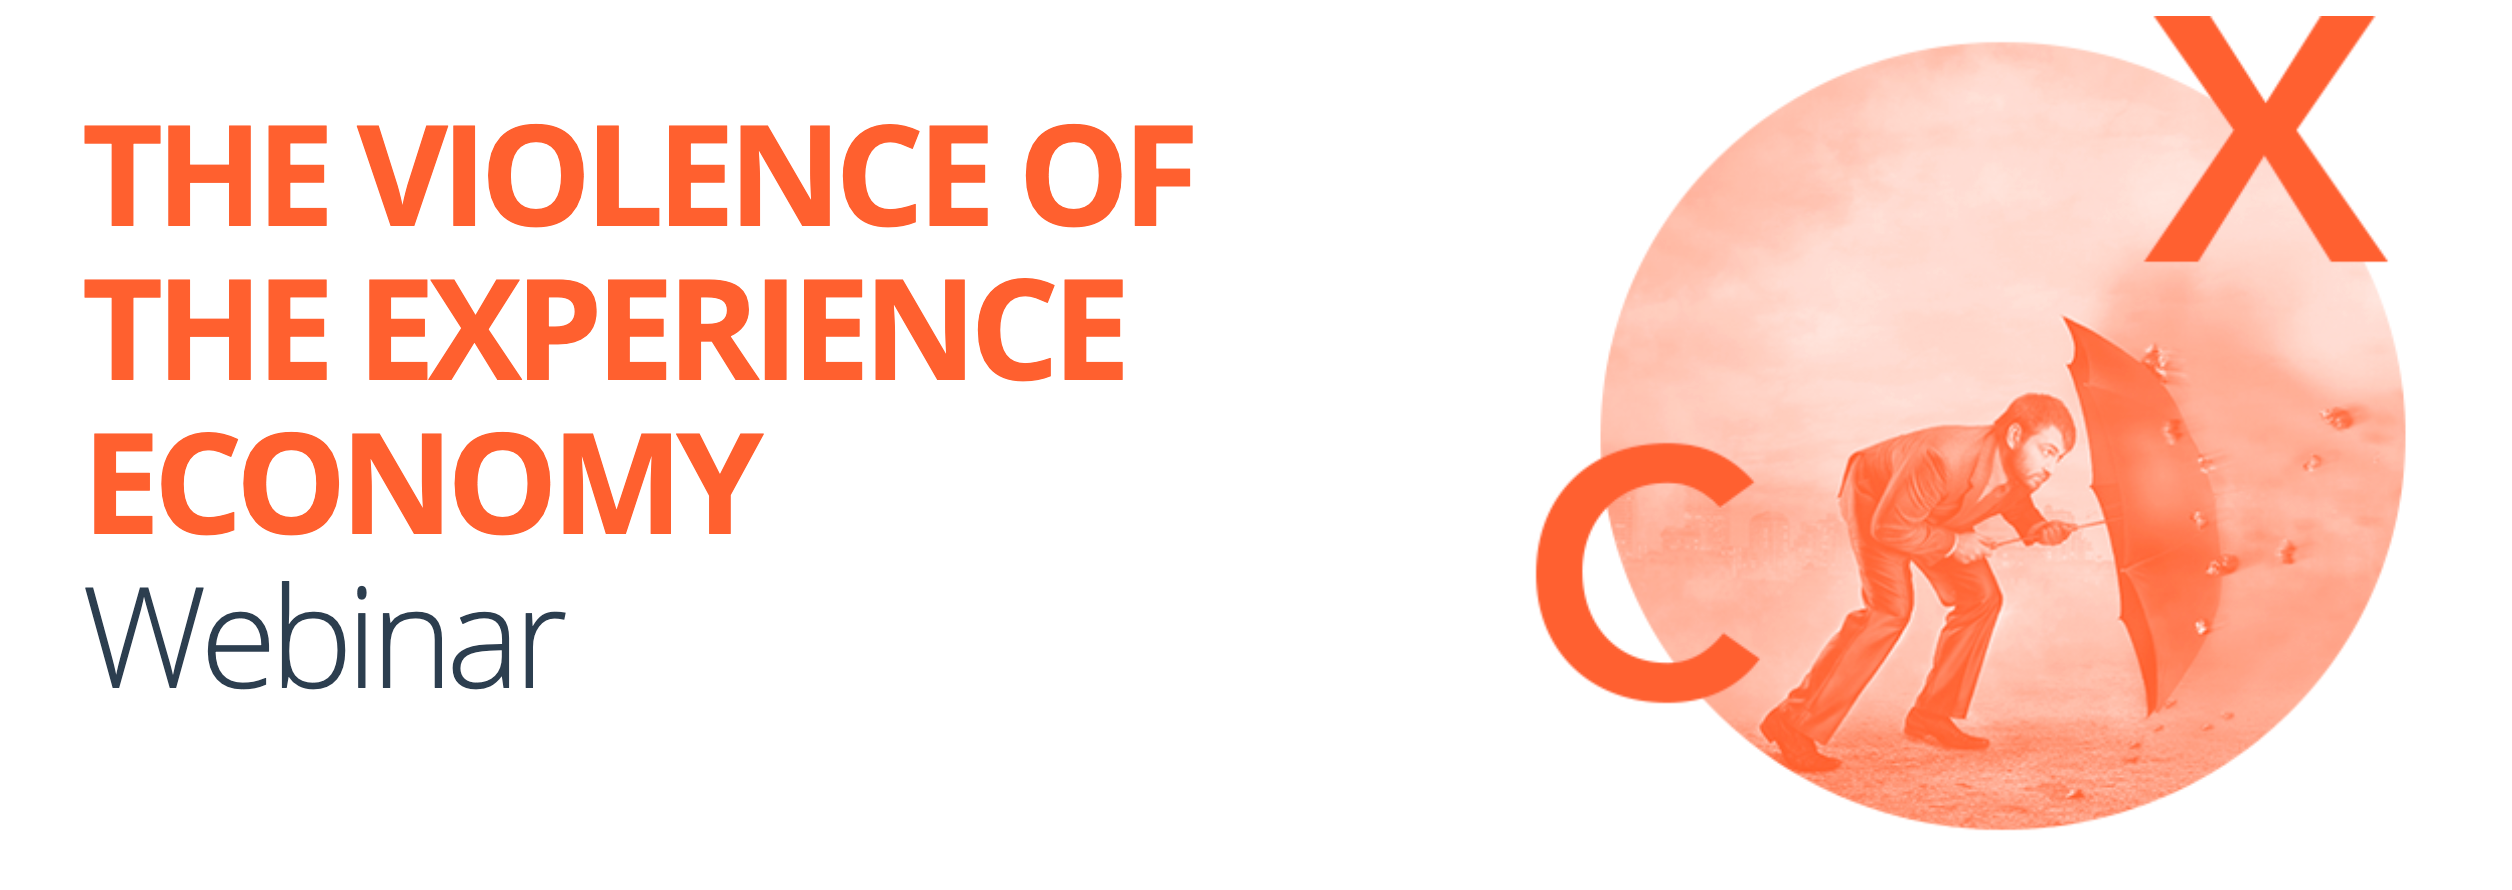 https://go.worthix.com/the-violence-of-the-experience-economy